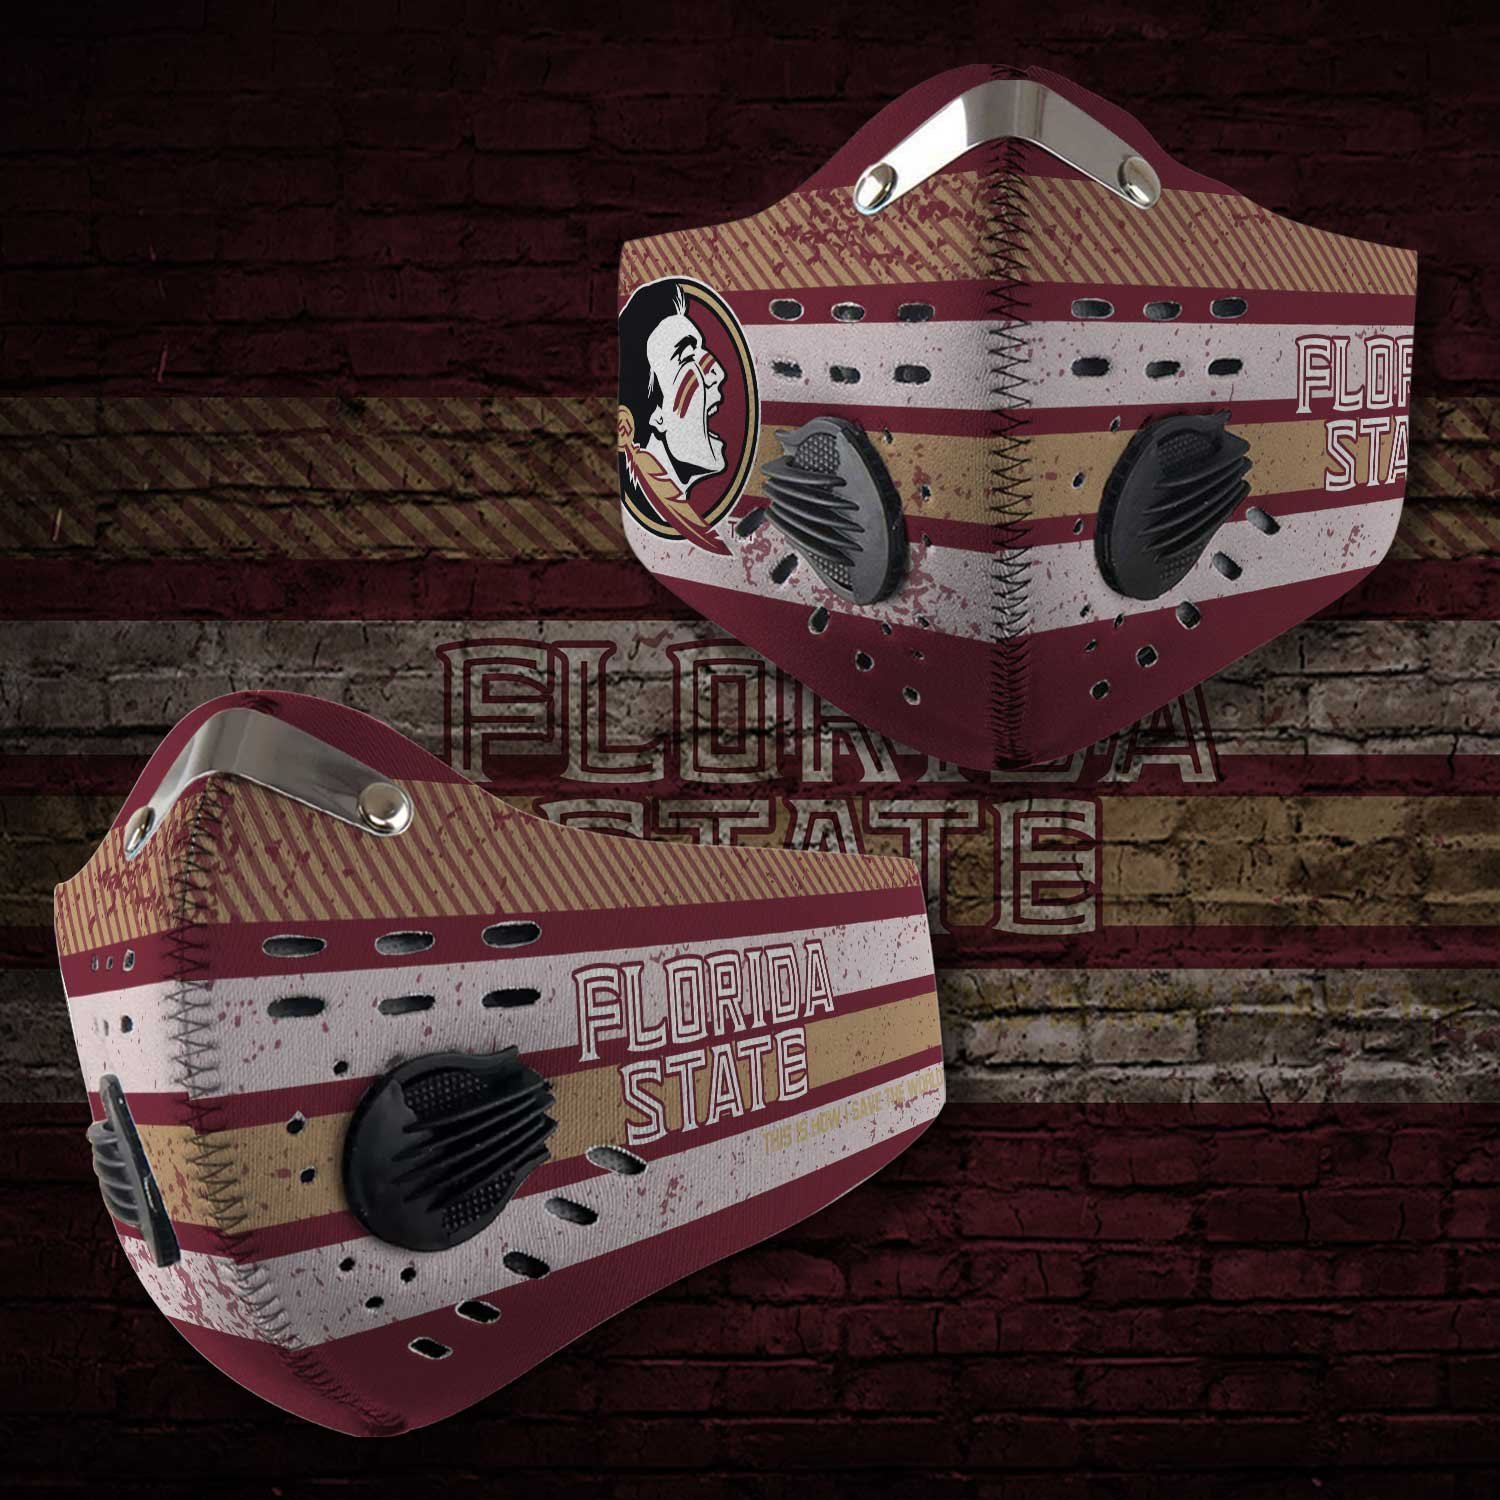 Florida state seminoles football this is how i save the world face mask 1